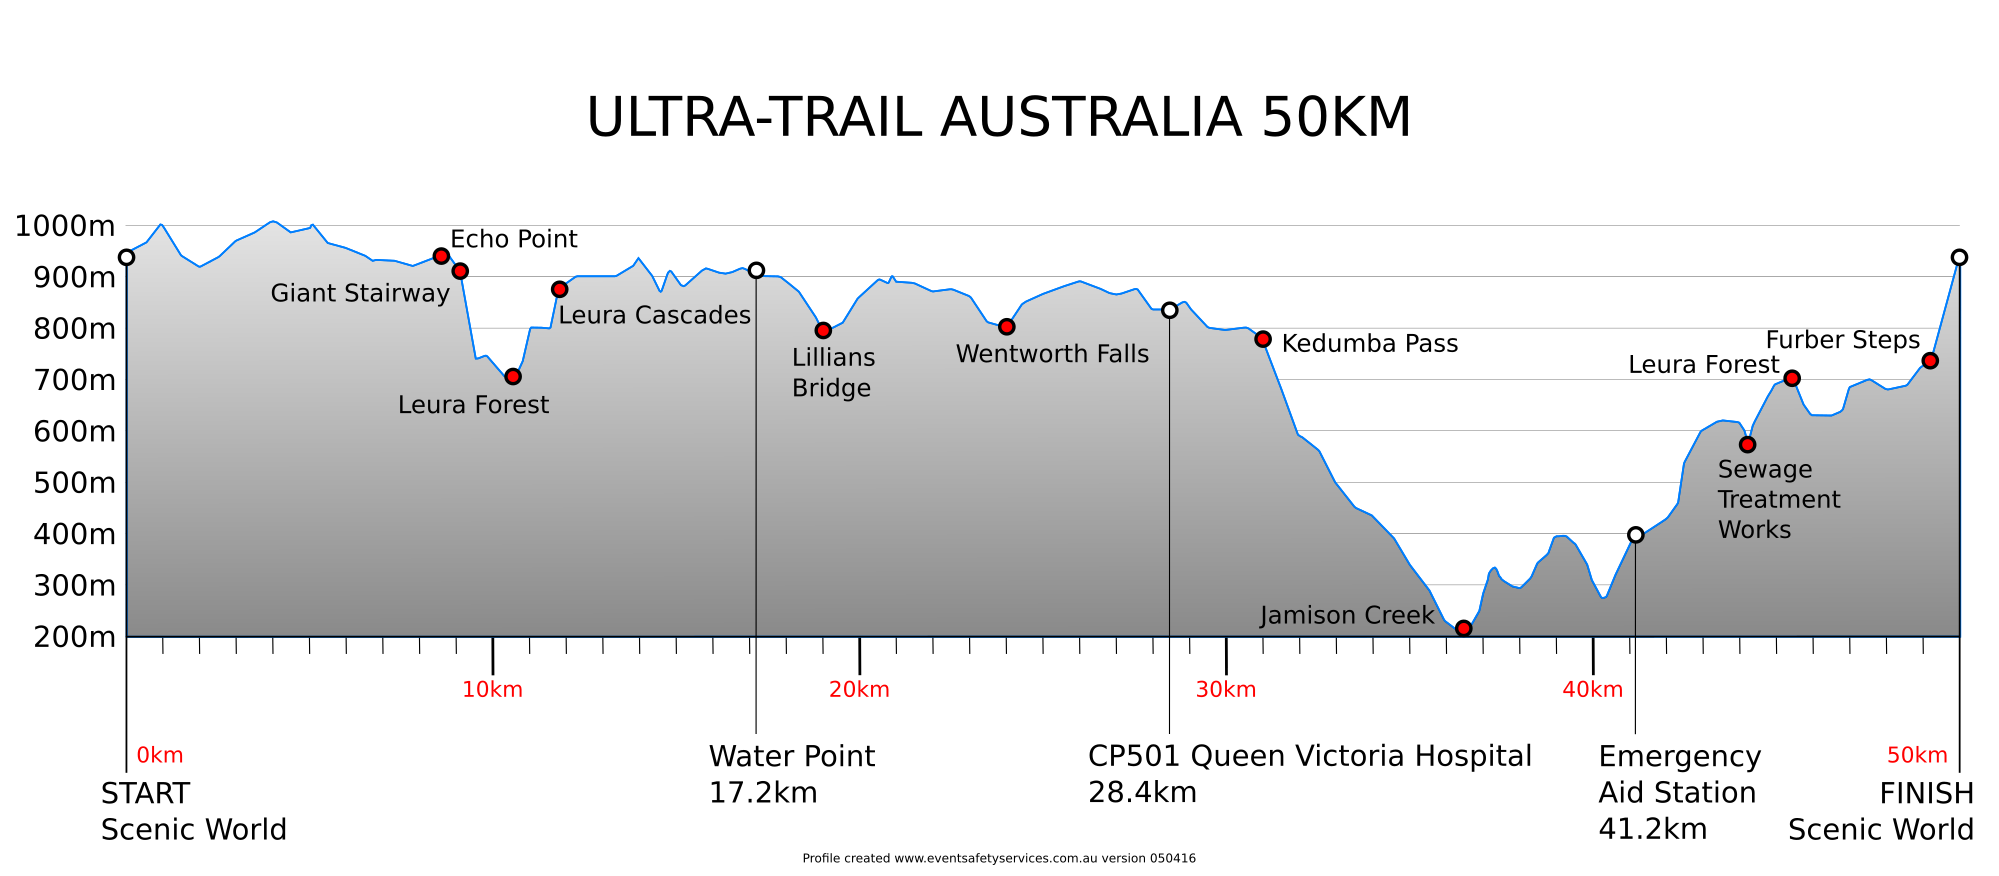 UTA50 Course Description - Stairs, Hills, More Stairs . . . What are you in for?